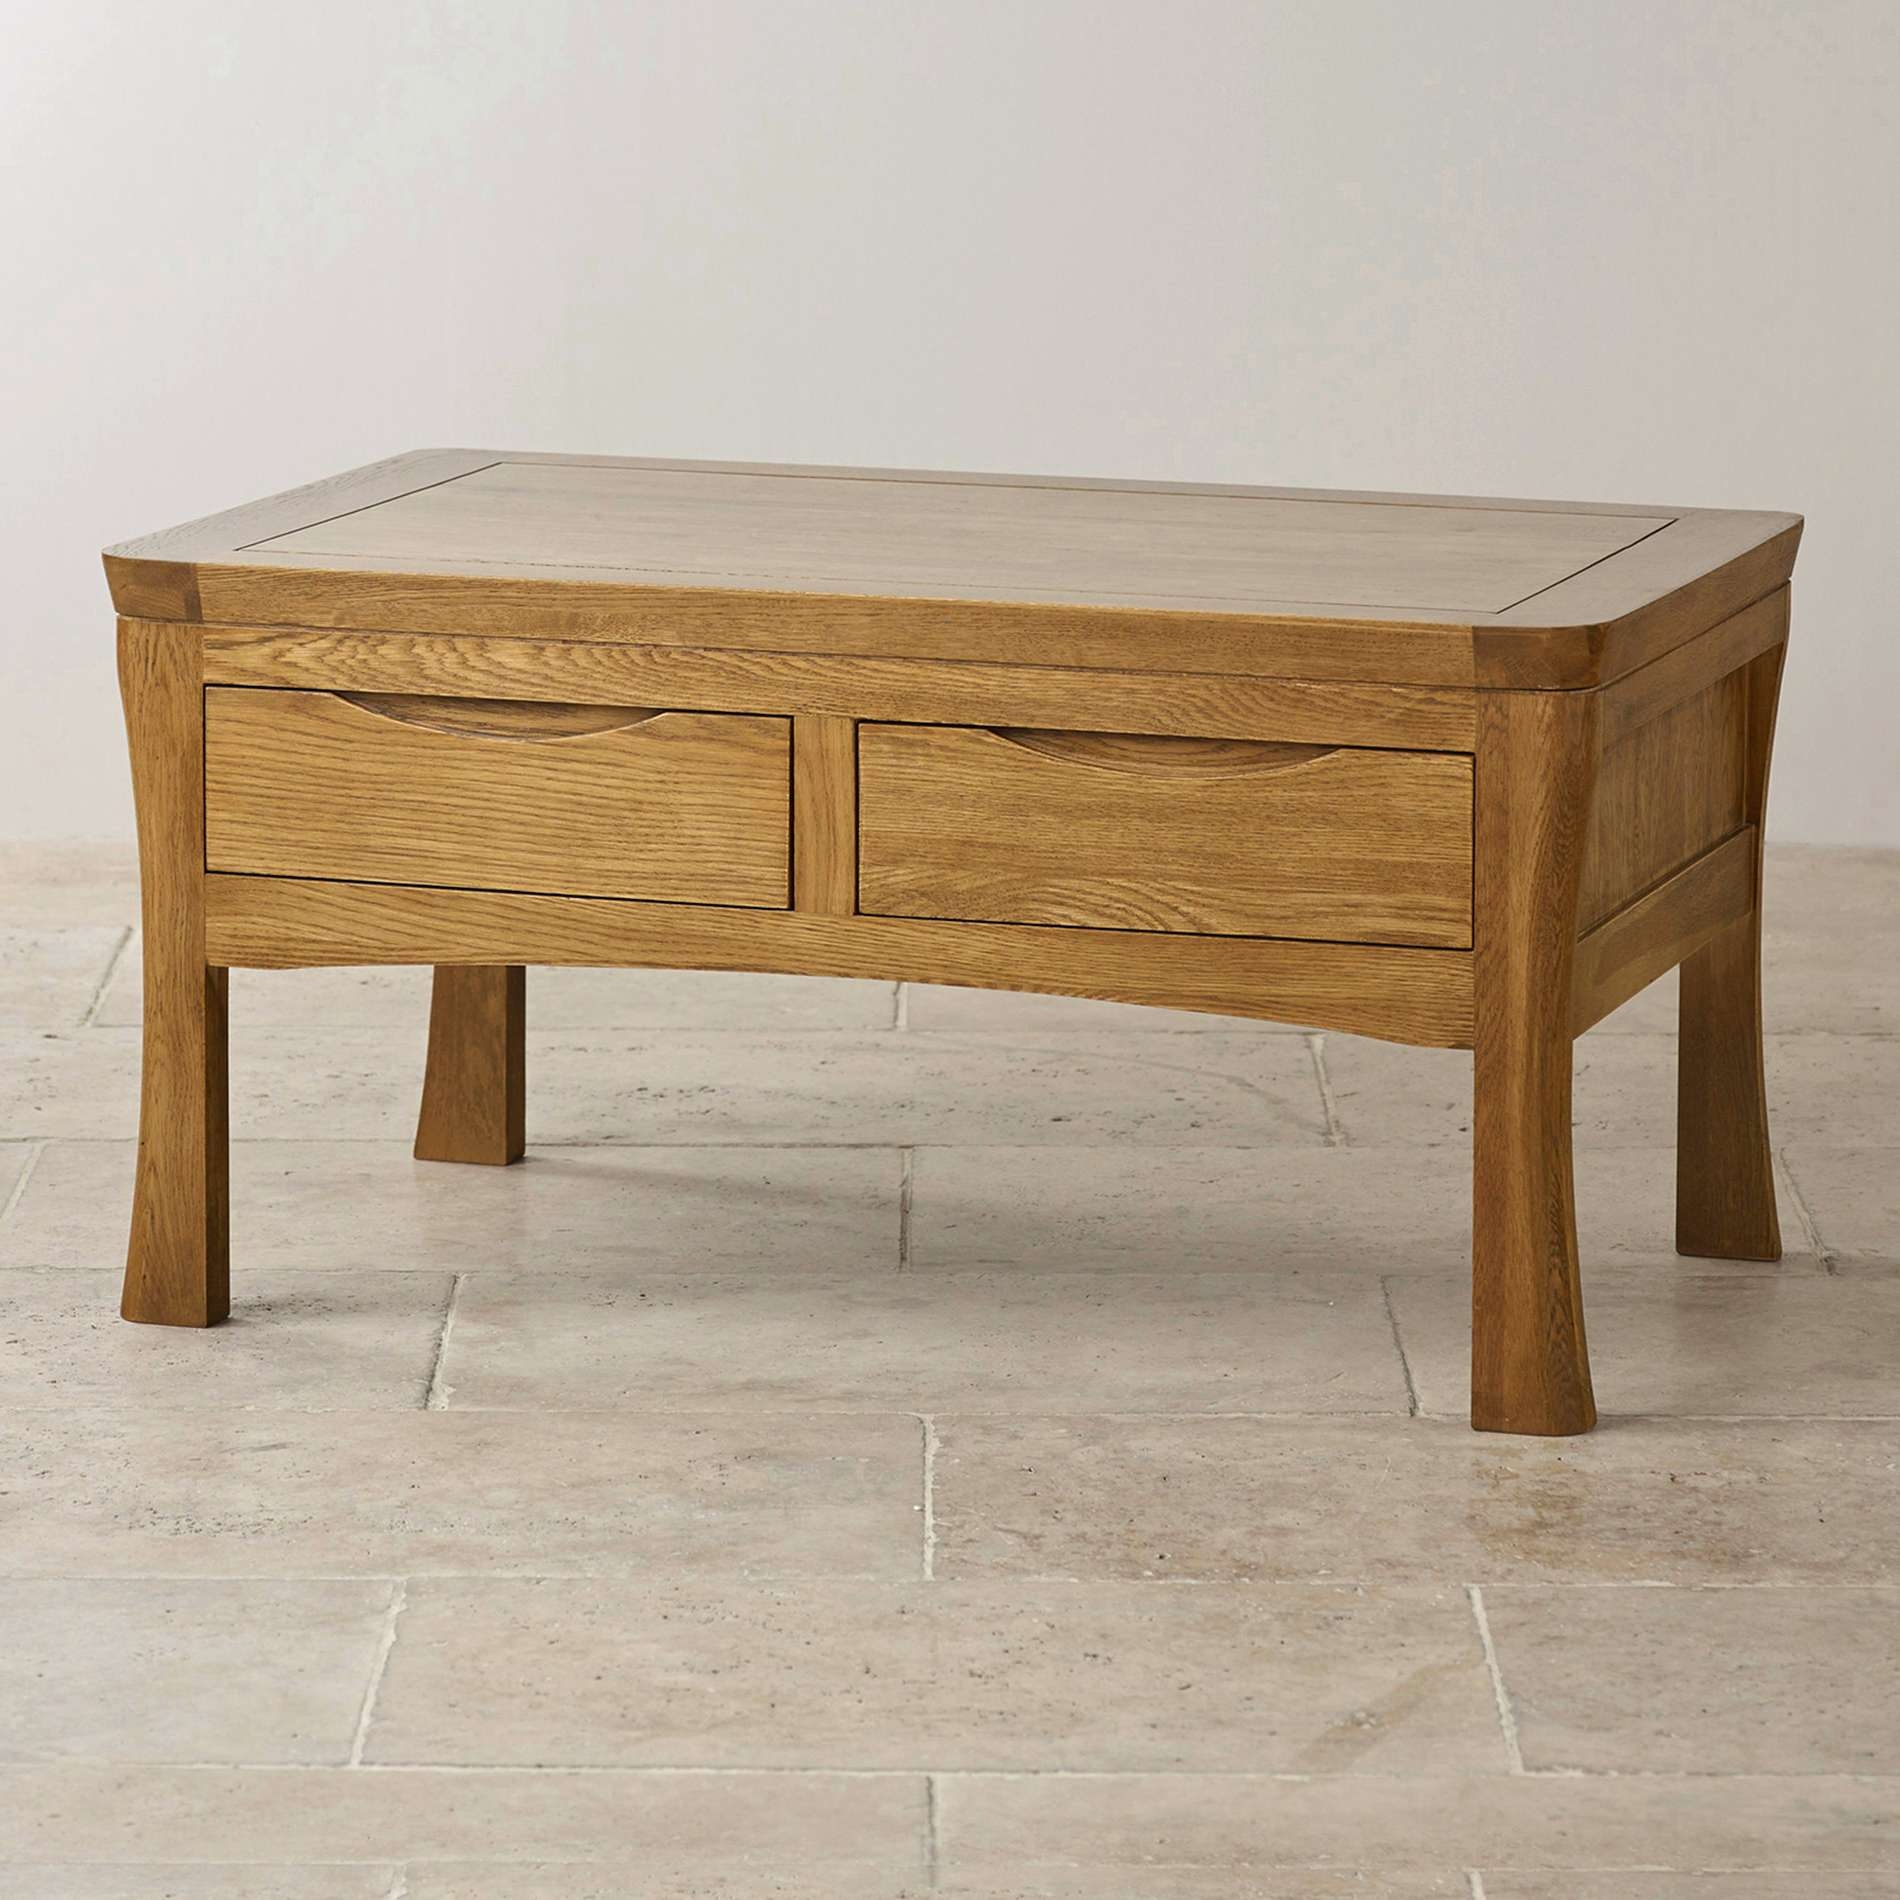 Coffee Tables : Solid Wood Coffee Table With Drawers And Shelf Oak Regarding Favorite Oak Coffee Tables With Storage (View 5 of 20)